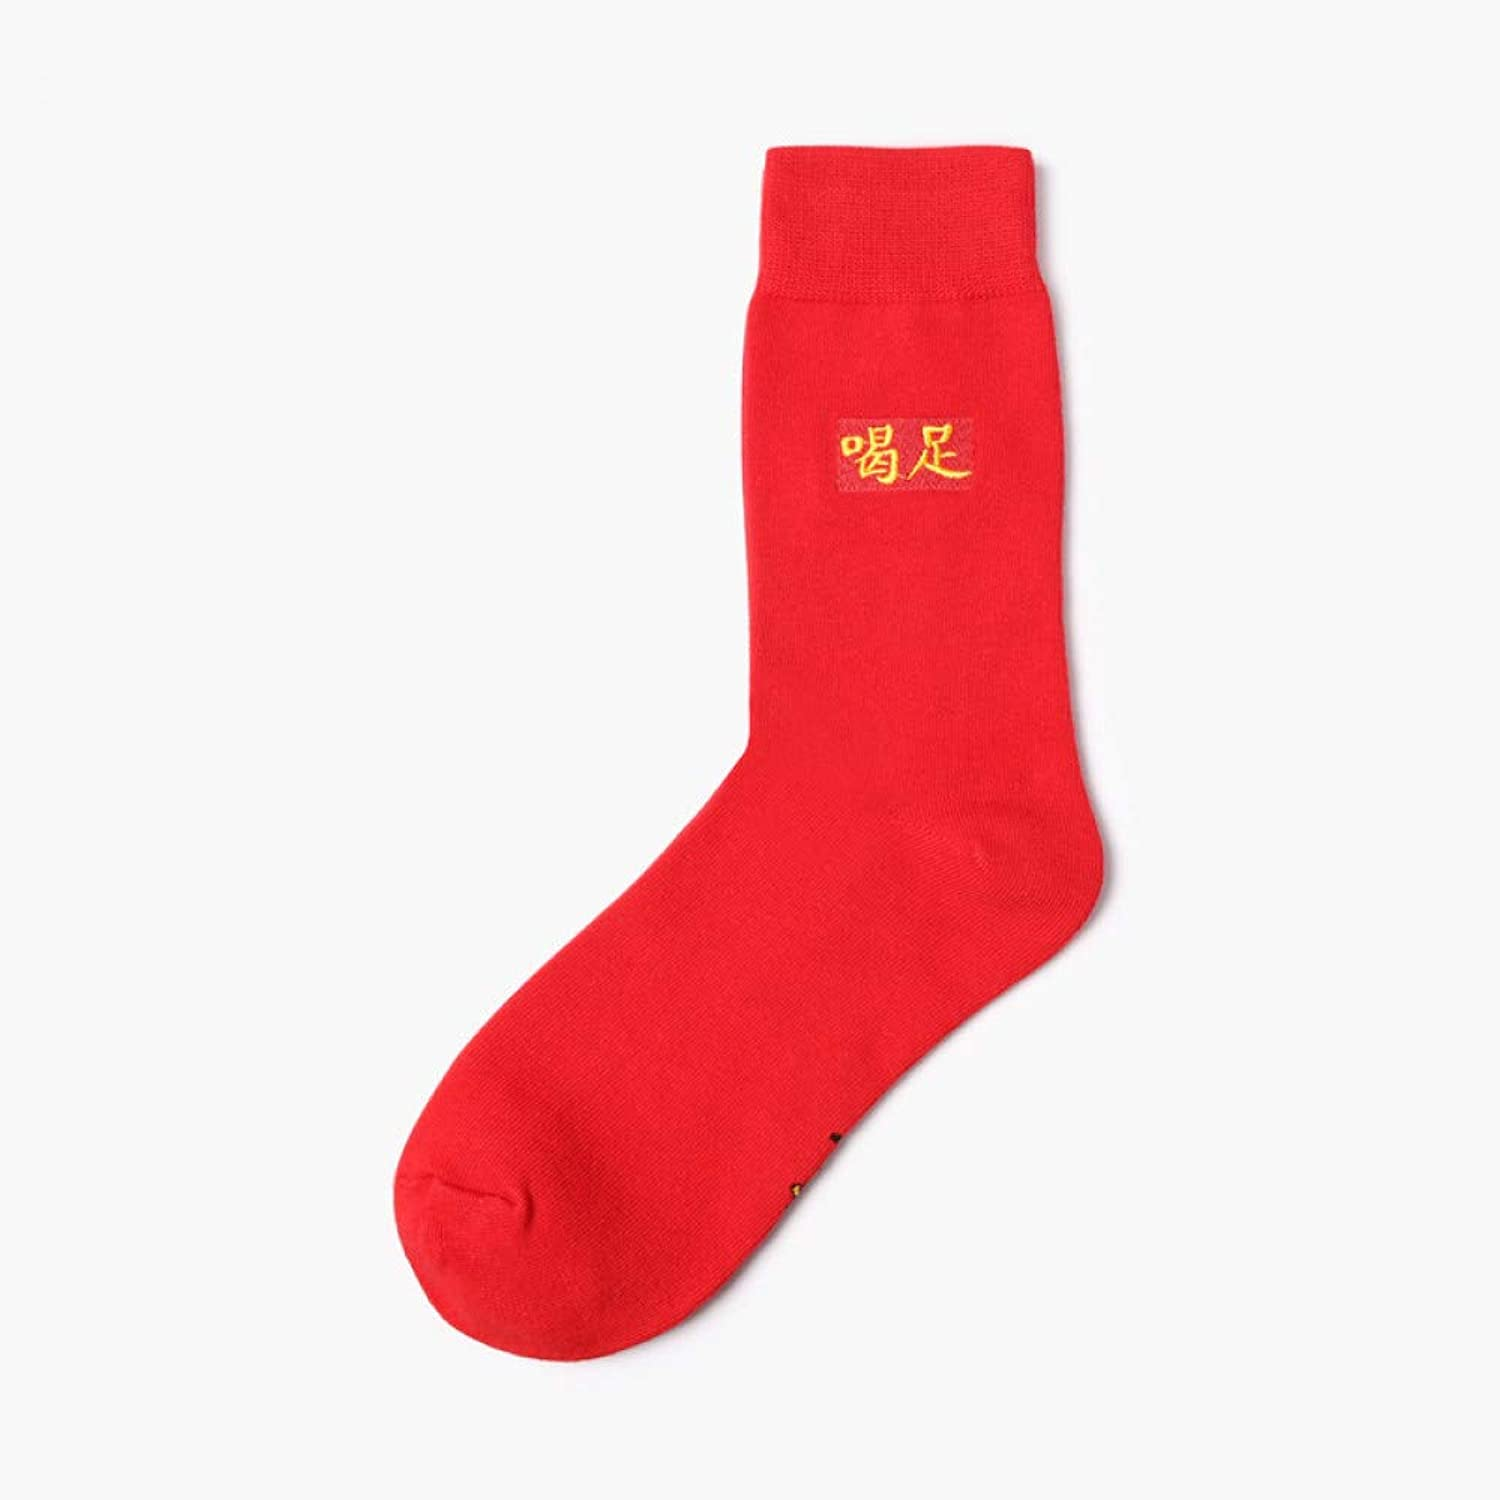 KALENAME (12 Pairs) Socks Socks Trend Cotton Socks Big Red This Year of The Year Step On The Villain Men and Women Red Cotton Socks